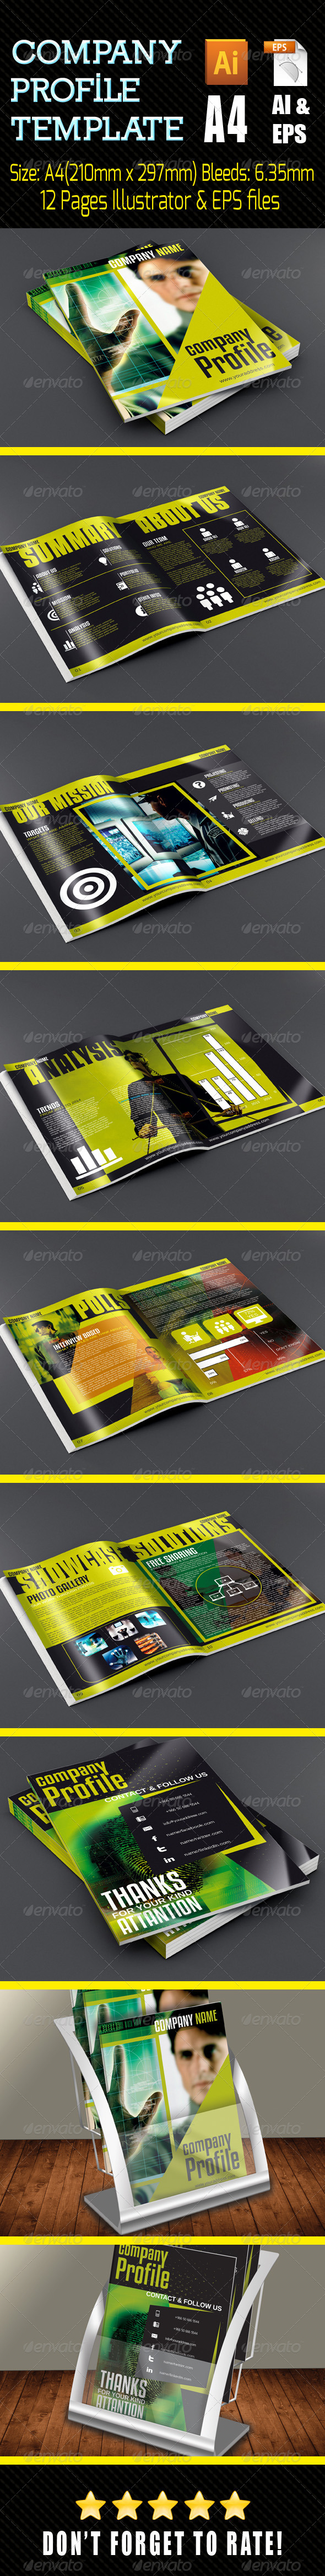 GraphicRiver Company Profile Portrate 7408583